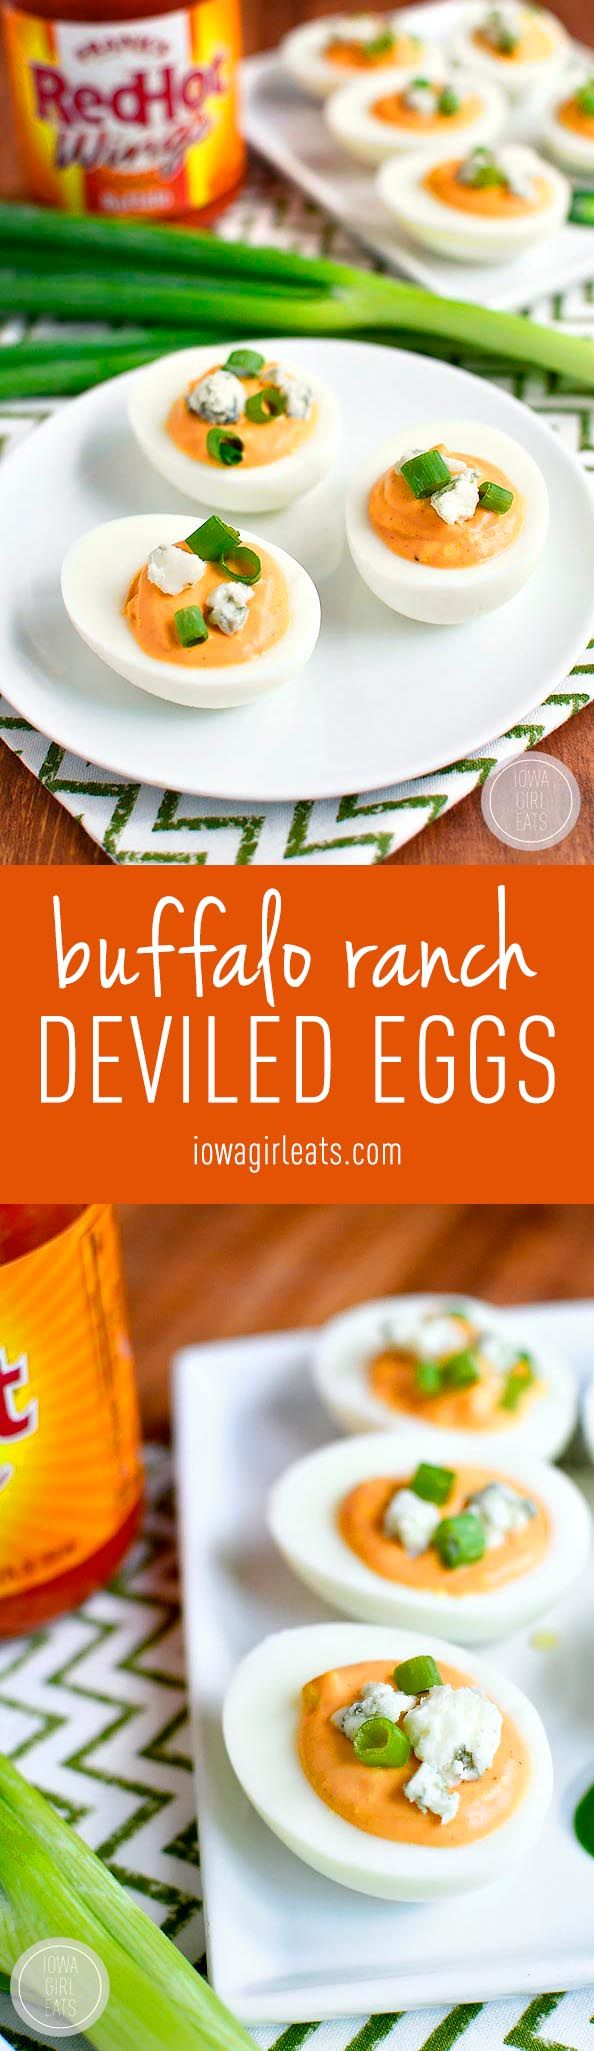 Buffalo Ranch Deviled Eggs are truly devilish-tasting thanks to spicy buffalo wing sauce and cooling ranch dressing in the mix!